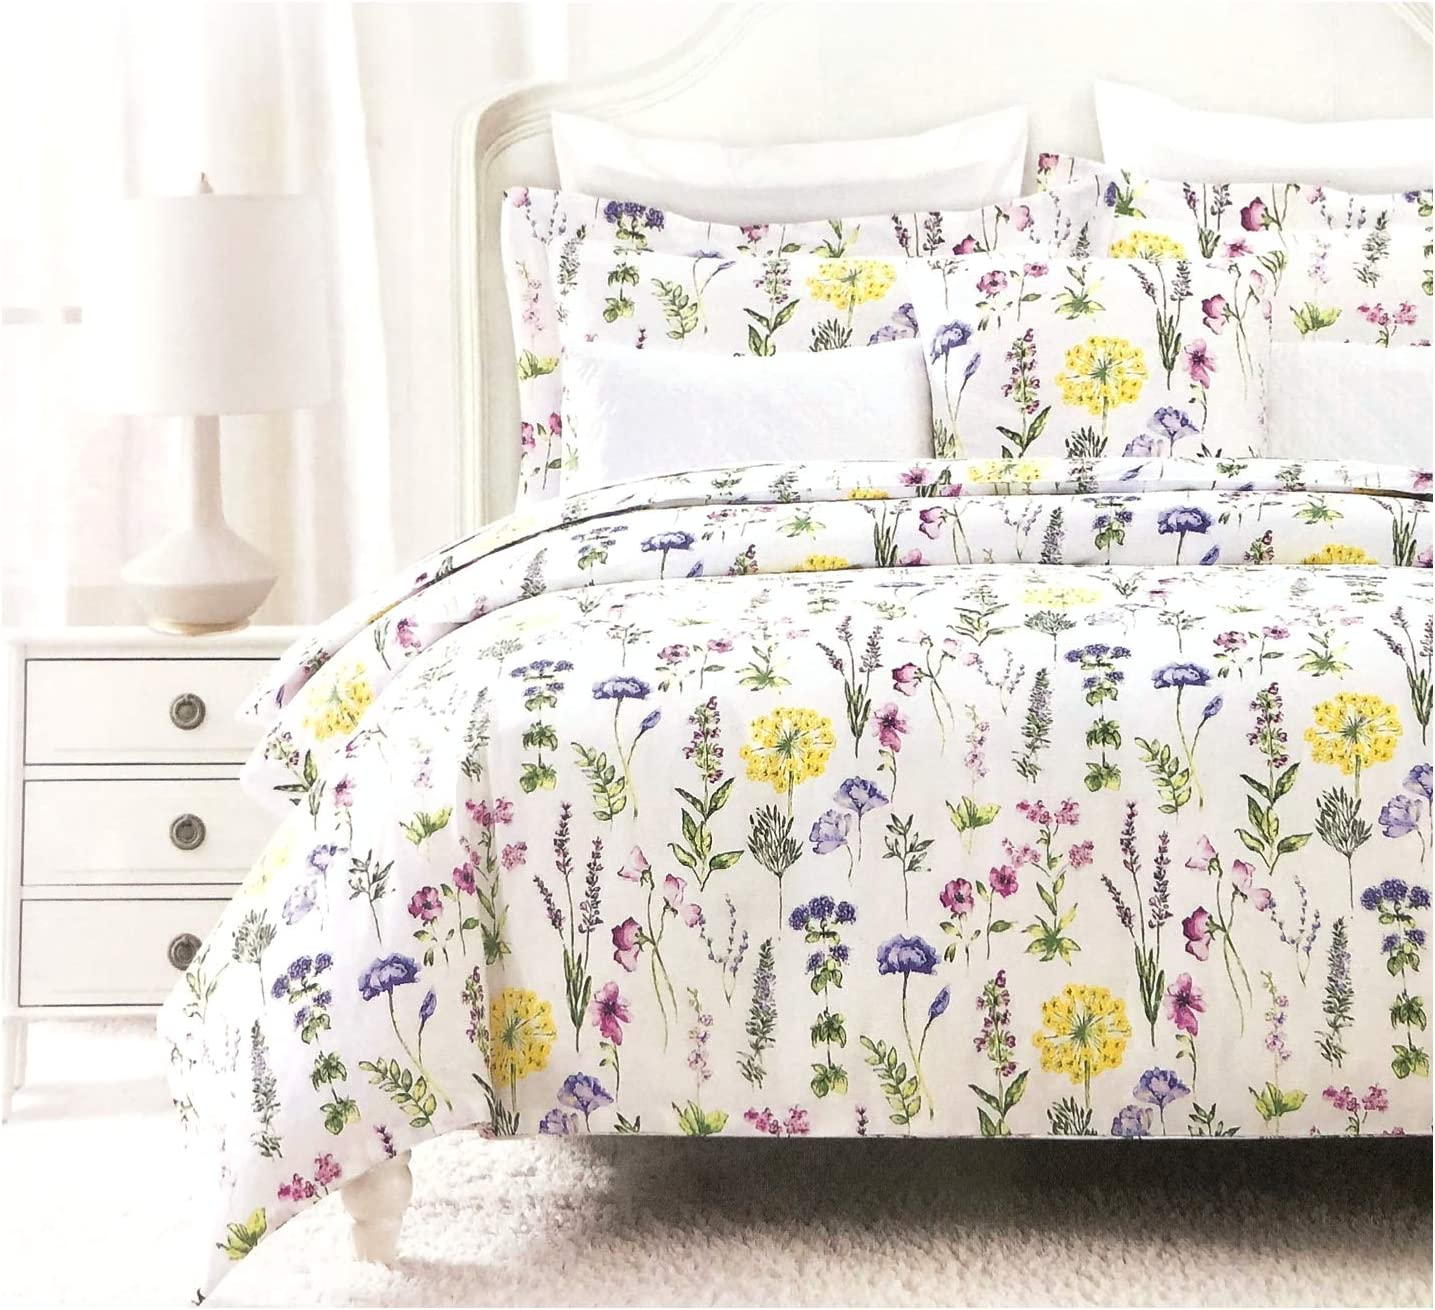 Nicole Miller Modern Farmhouse Bedding French Countryside Floral Toile Print Pure Cotton Duvet Quilt Cover Set Colorful Garden Wildflower Watercolor Illustration Vintage Flower (Queen, Multicolor)